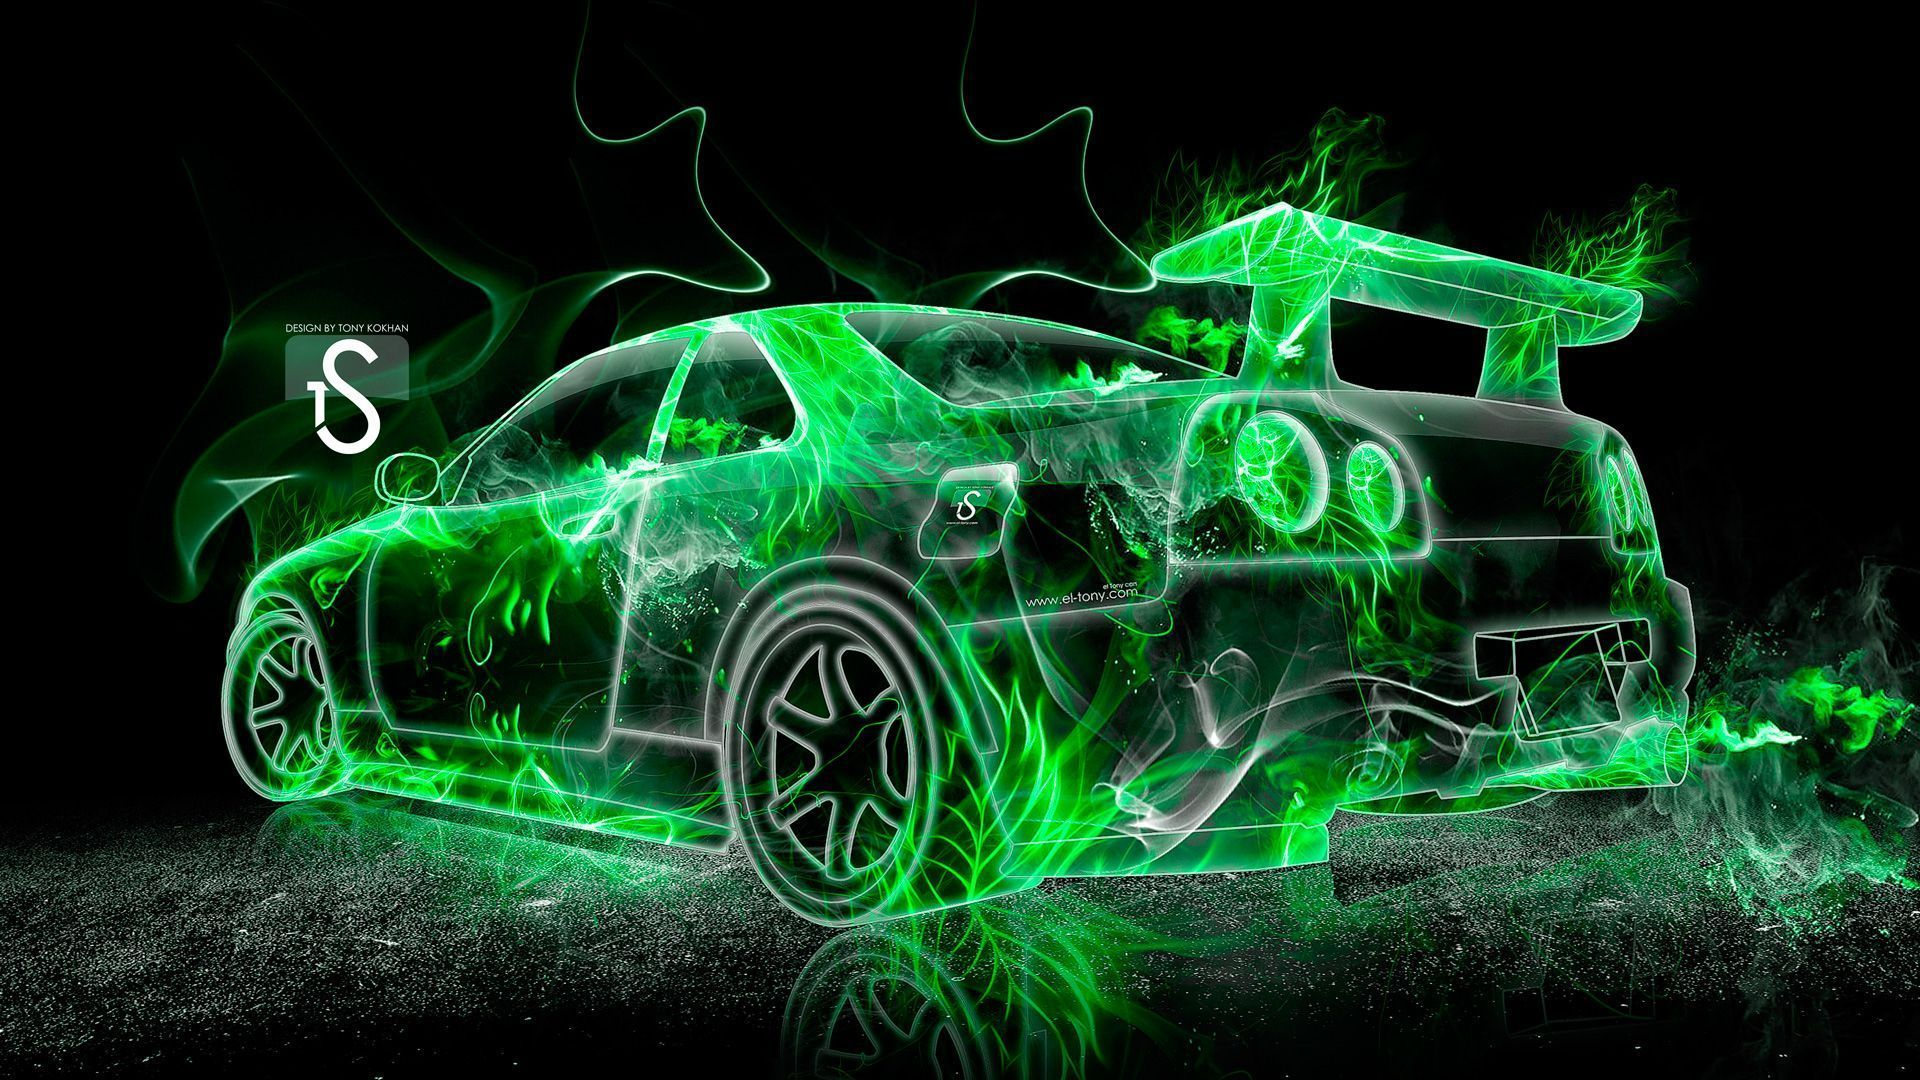 Exceptionnel Nissan Skyline GTR R34 Fire Abstract Car 2013 « El Tony